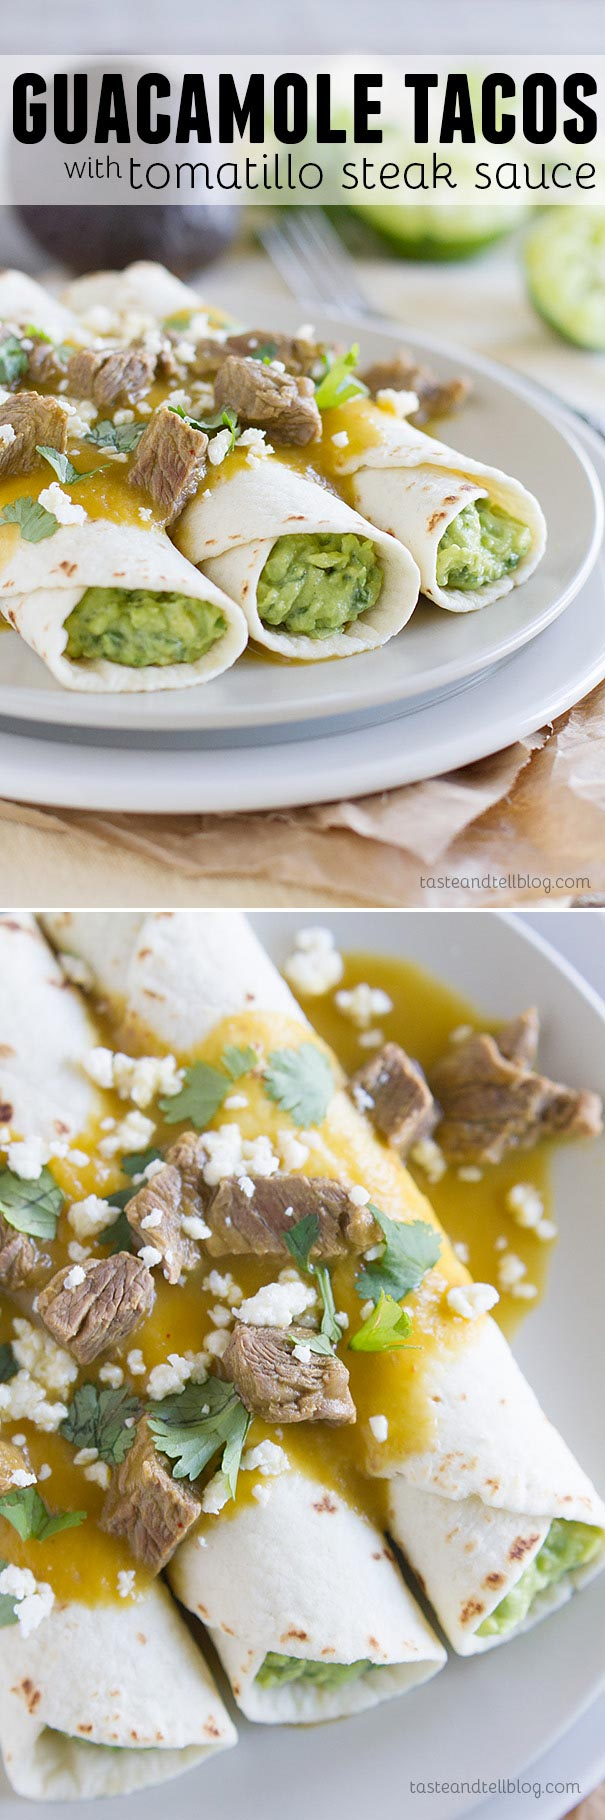 Not your typical taco - these guacamole tacos have flour tortillas filled with an easy guacamole, then served with a tomatillo sauce that is filled with chunks of steak.